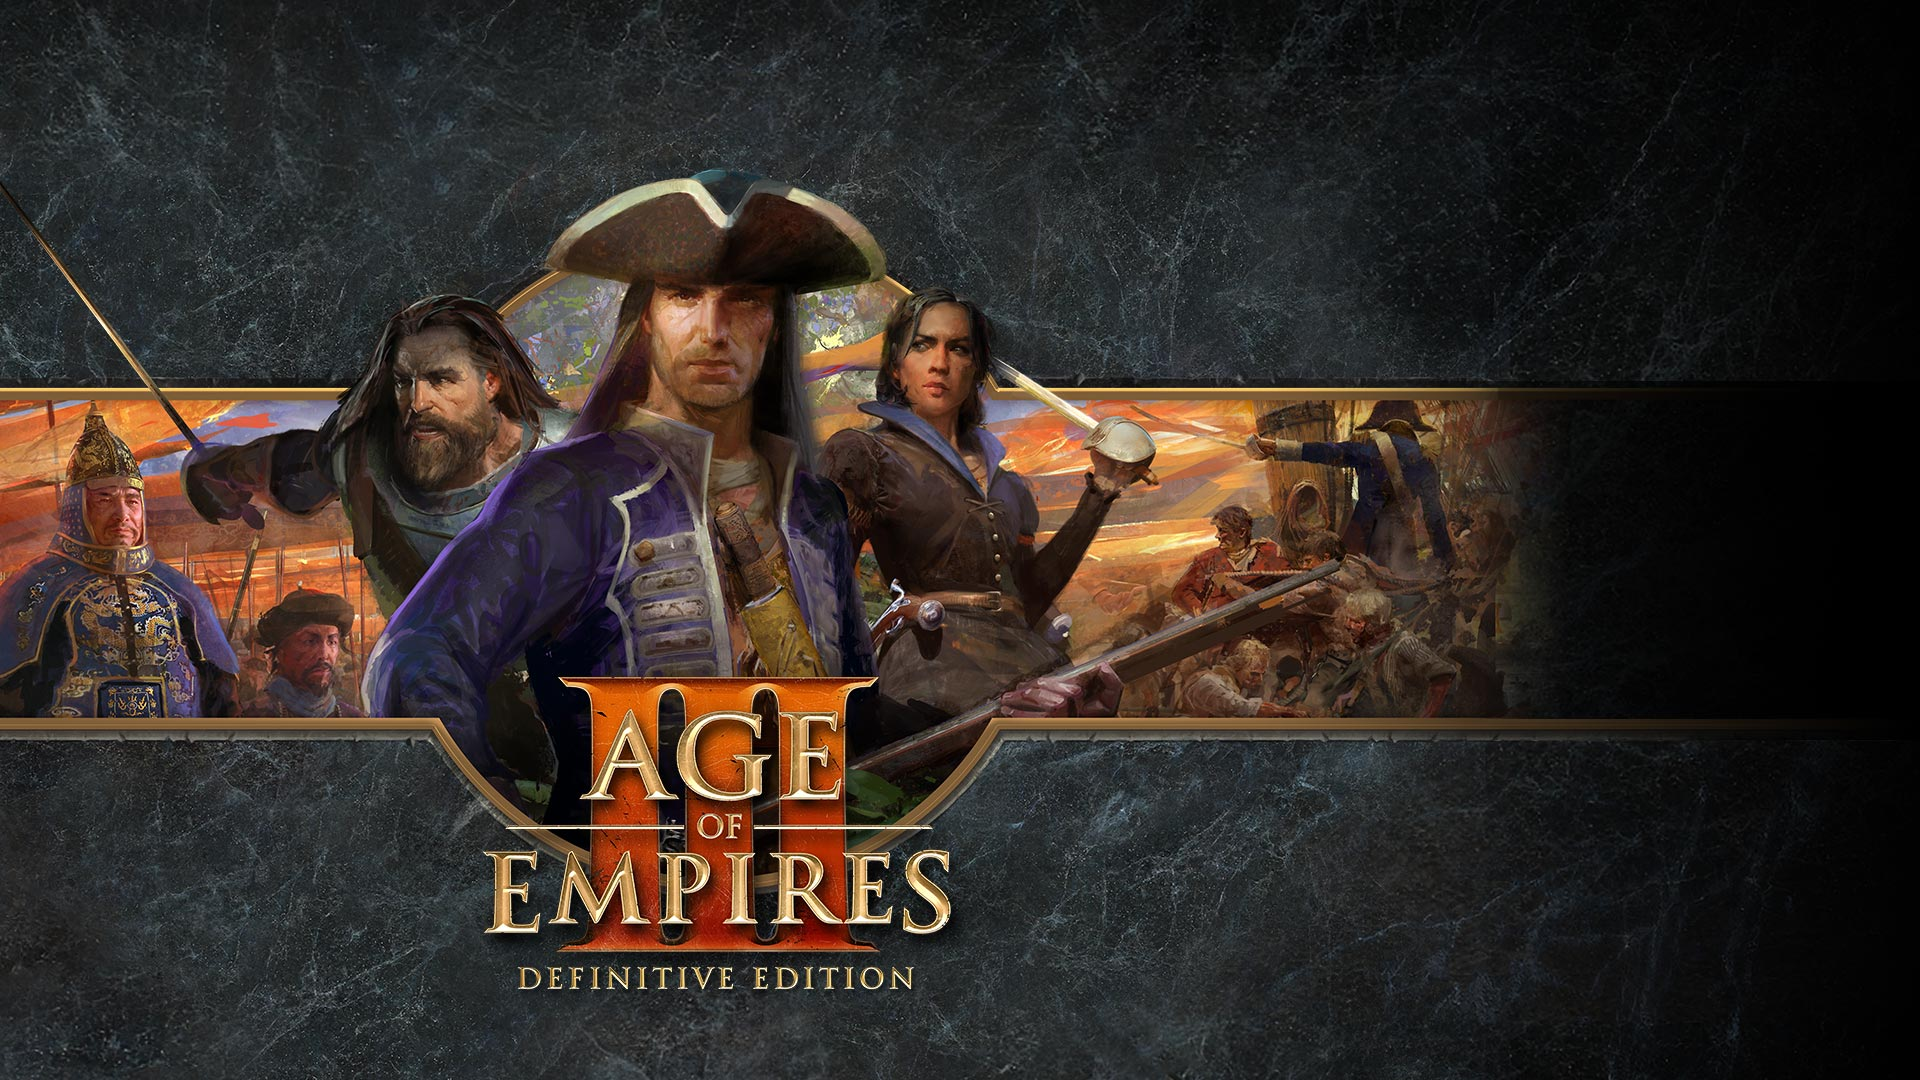 Age of Empires III: Definitive Edition,擺出姿勢的角色